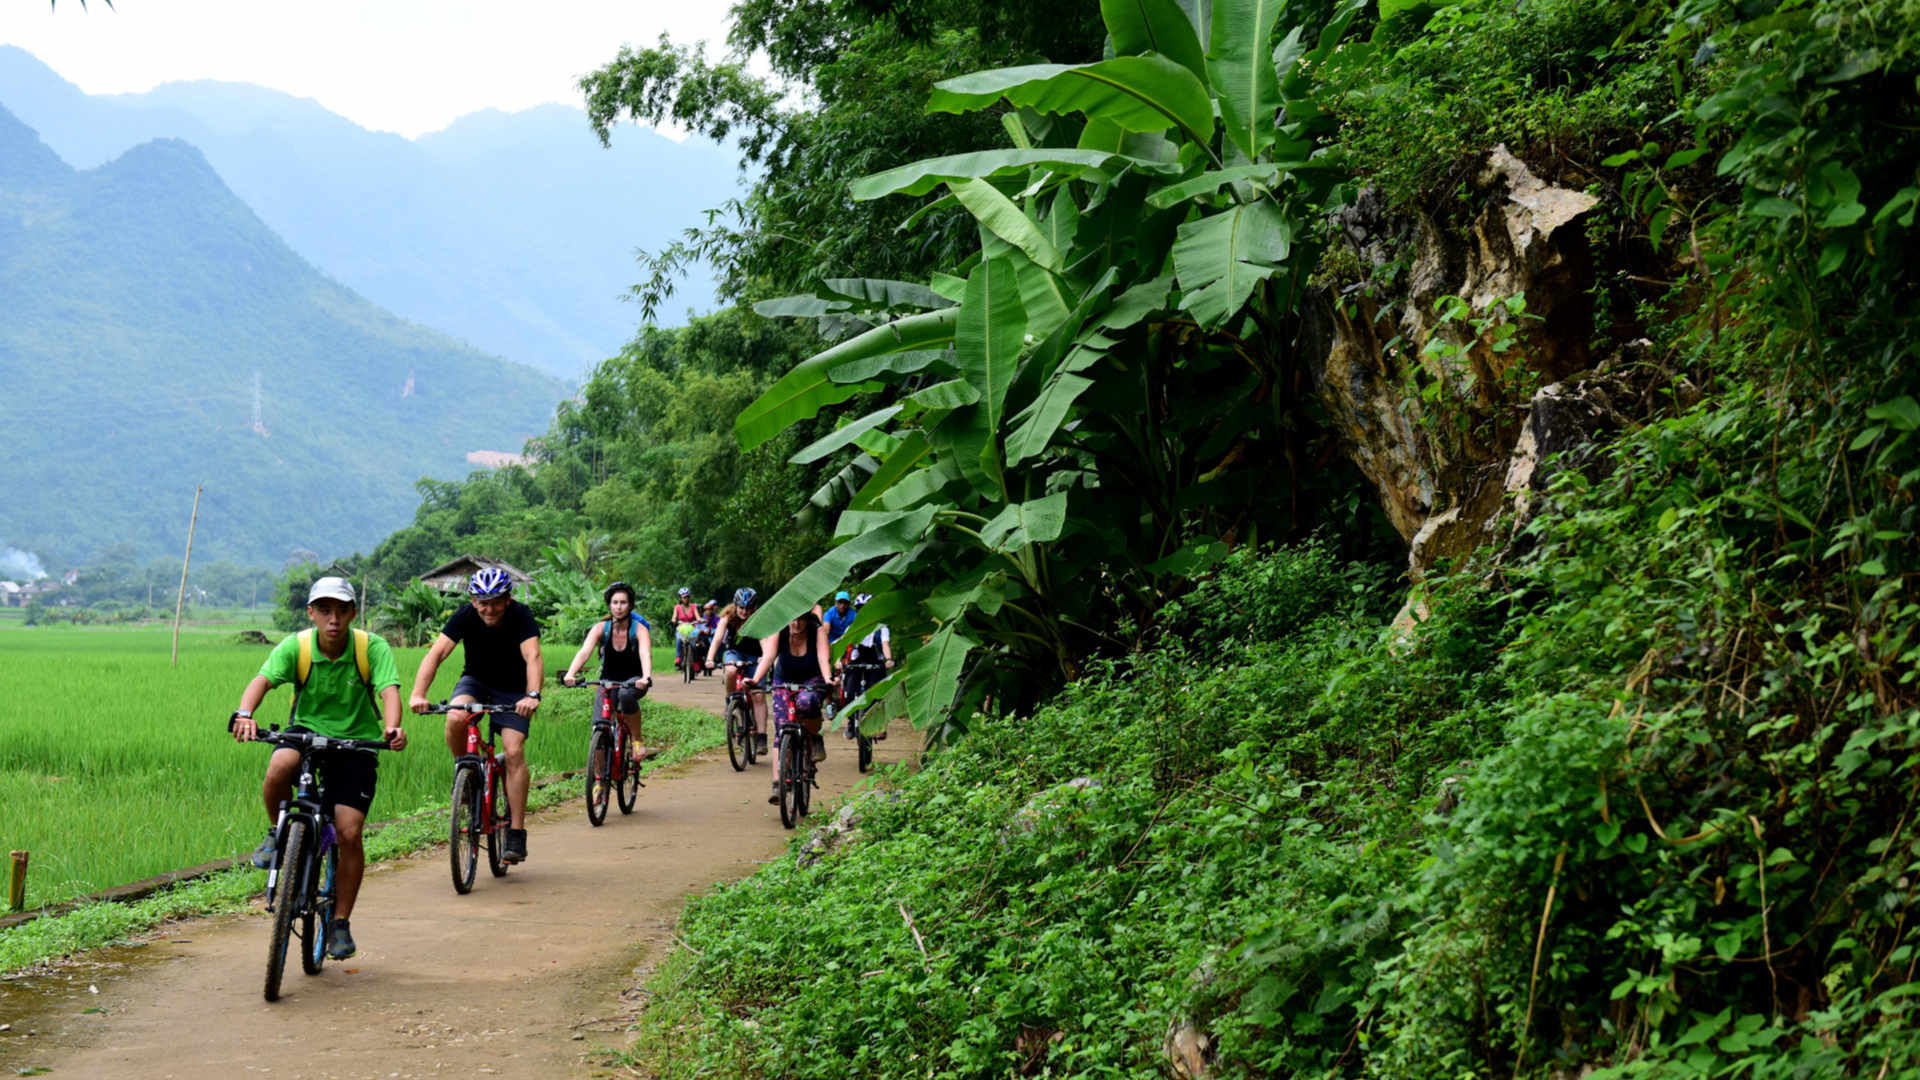 Go-Indochine cycling tour May Chau Vietnam